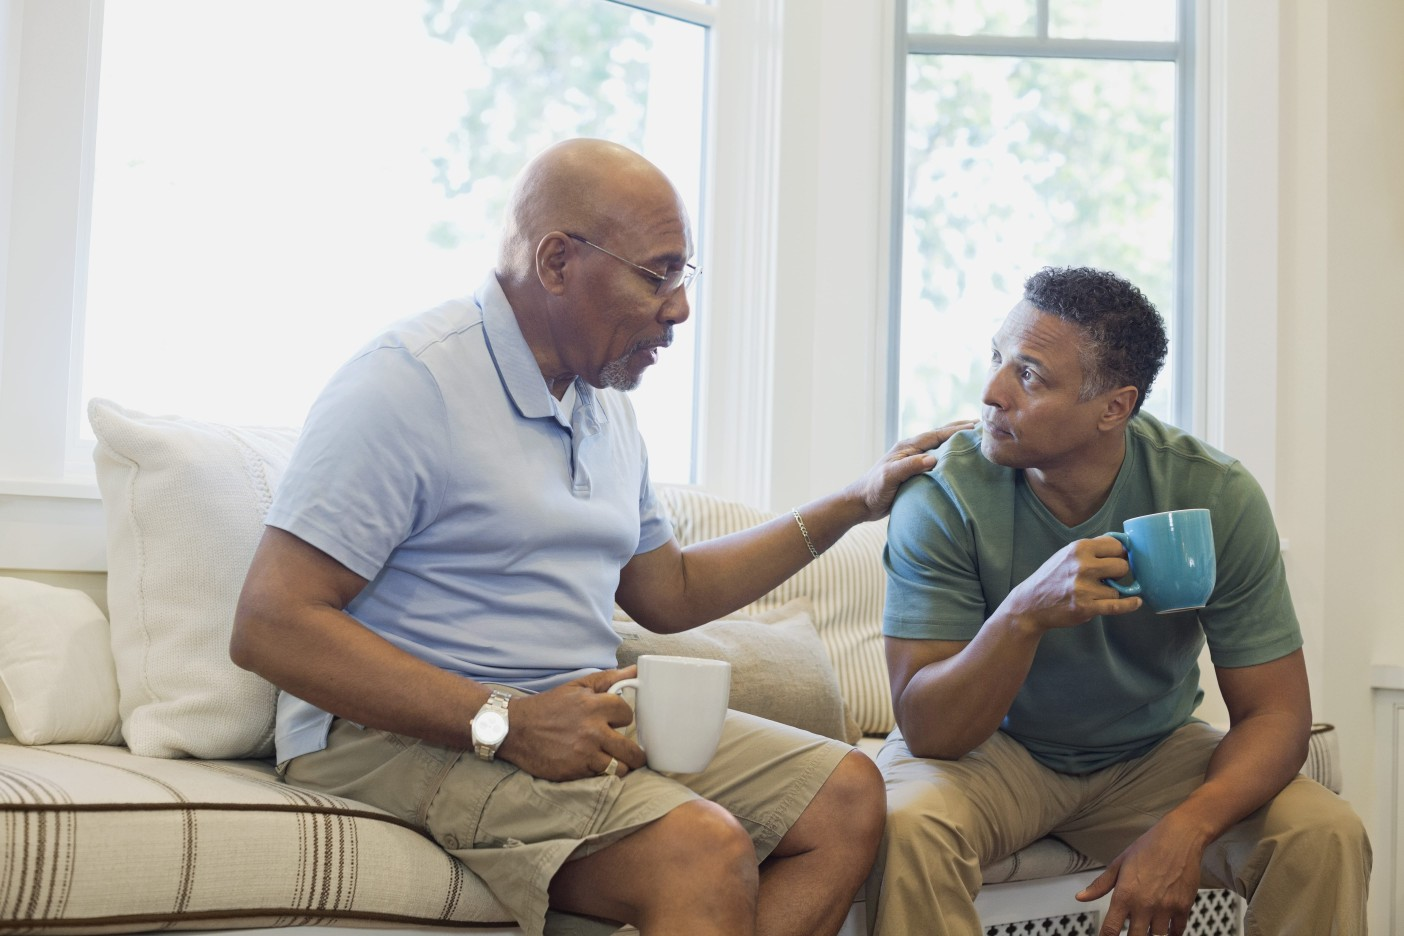 Two men drinking coffee discuss lung and esophageal cancer support groups in a well-lit living room